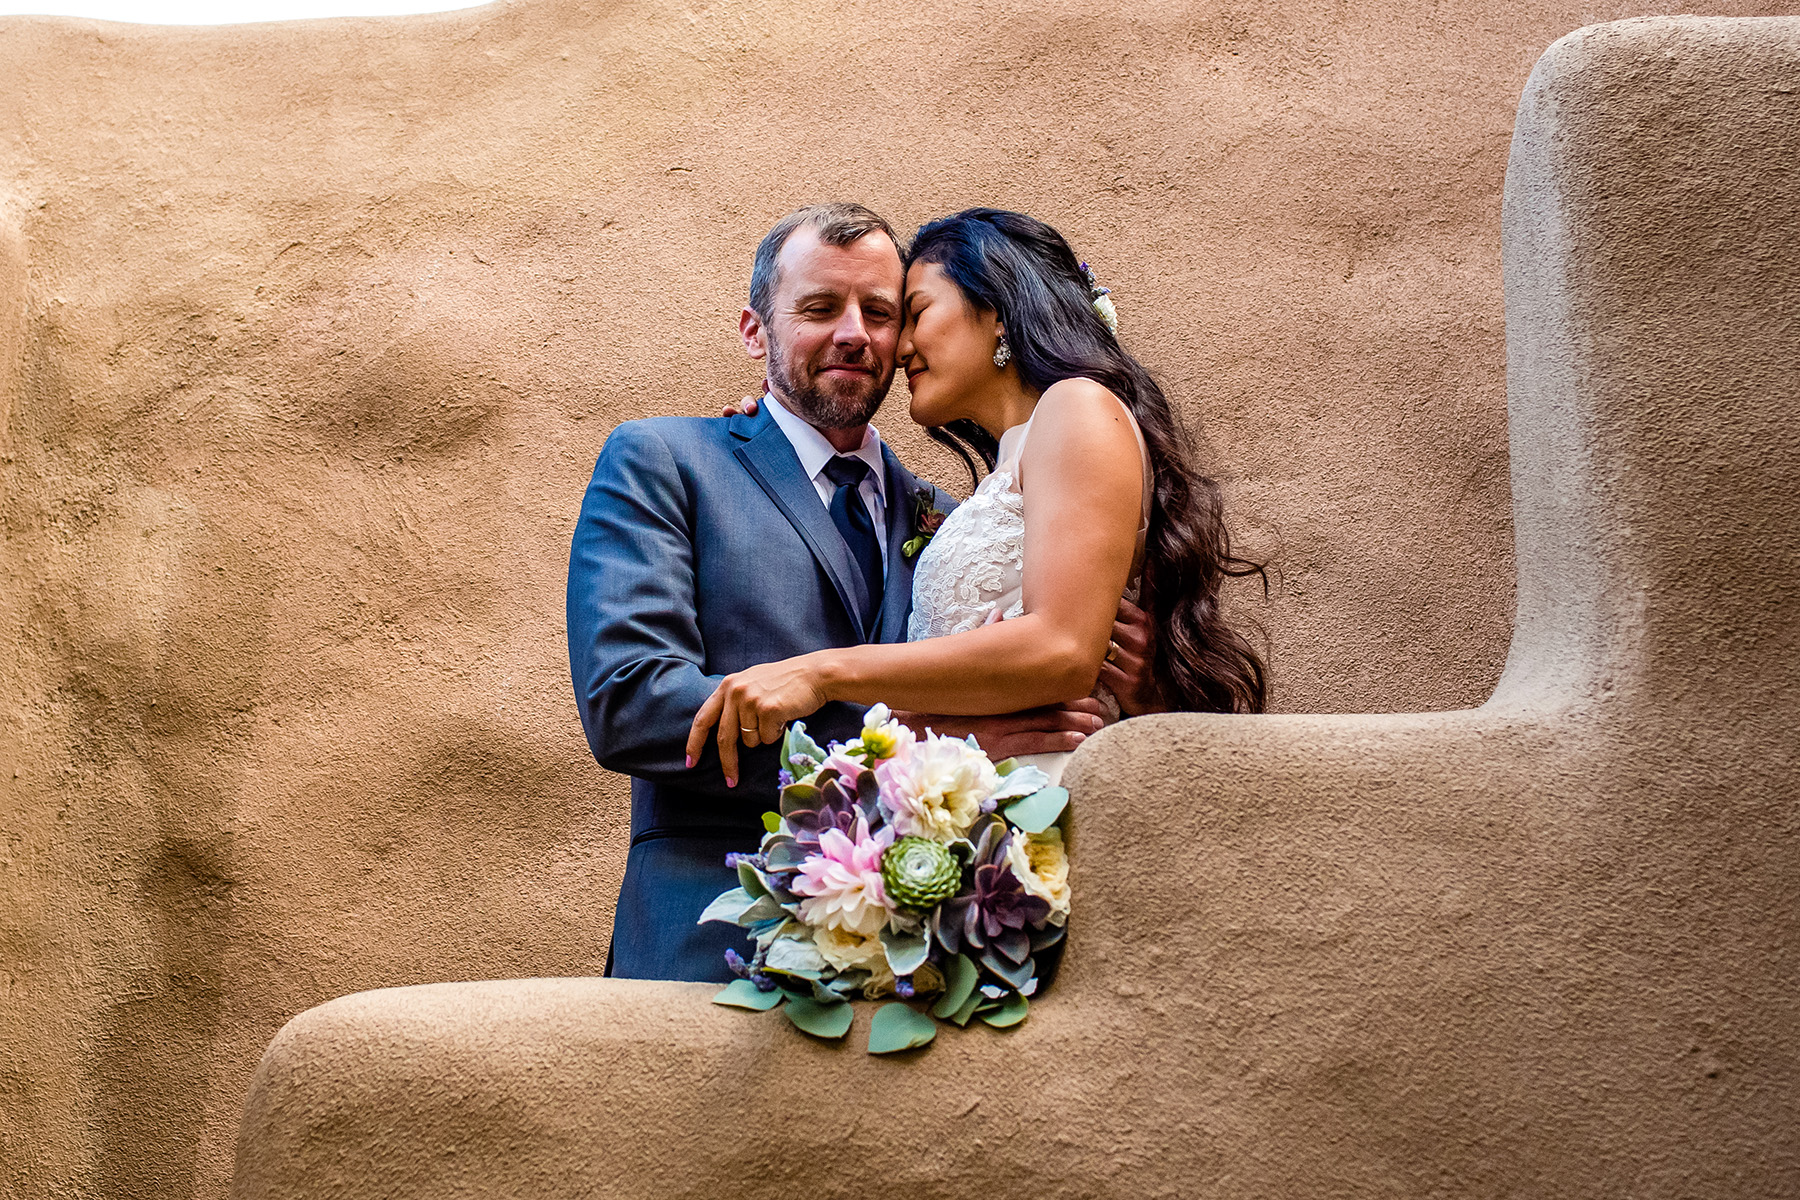 Lee-wedding-photography-La-Posada-Santa-Fe-New-Mexico-1080